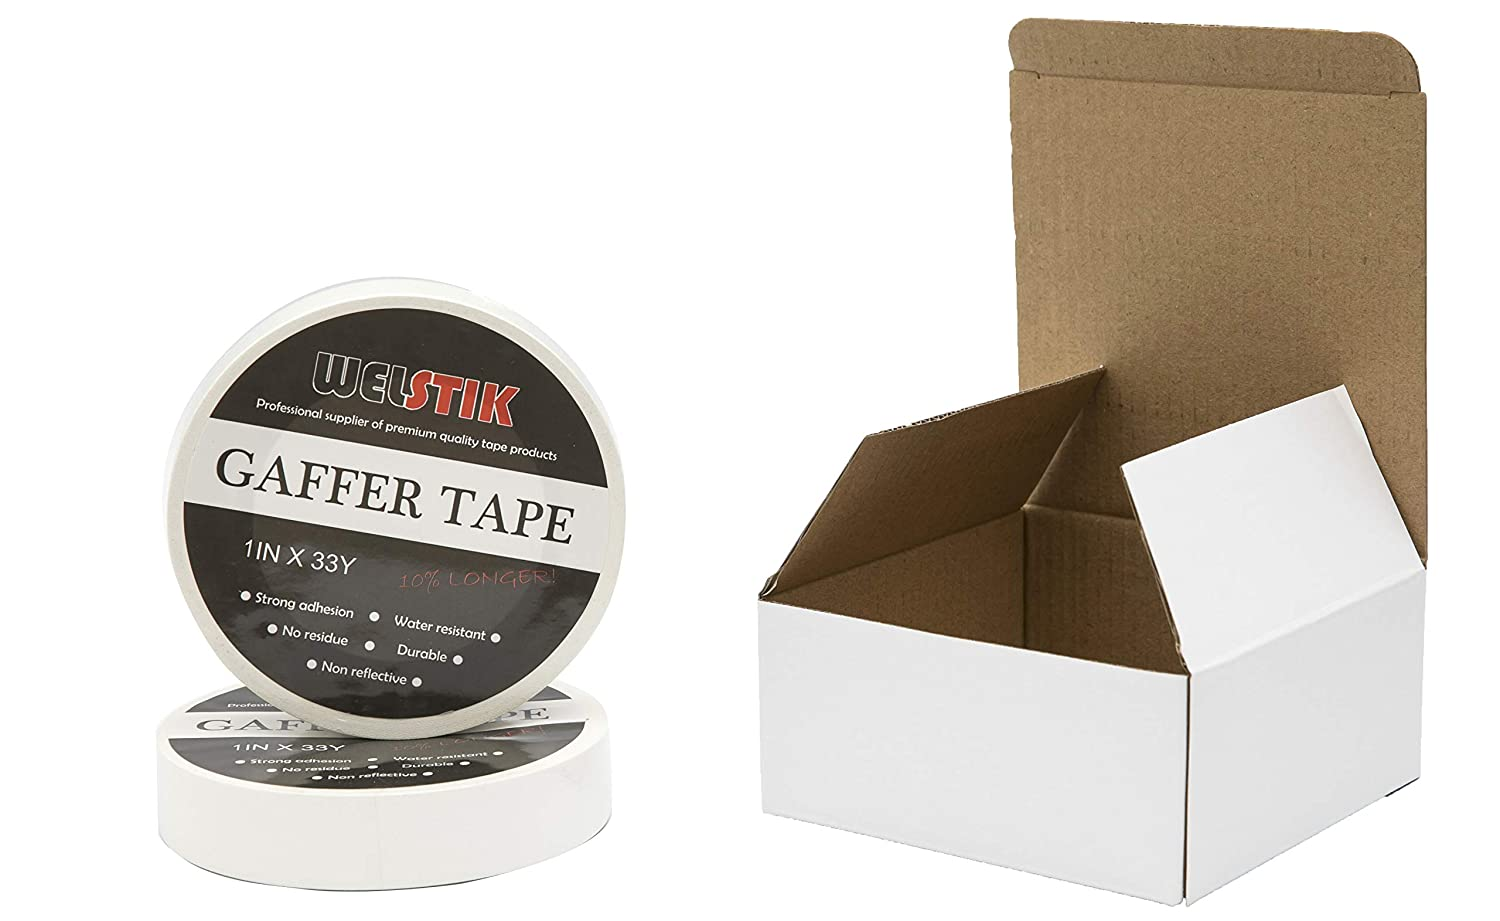 Bug Holes,Non-Reflective Easy to rip Heavy Duty Gaffer Floor Tape for Hockey Sticks Wall Cracks Welstik Tape 1 Pack Gaffer Tape White,1X 60 Yards-60 Yards Length-Suitable for DIY Projects